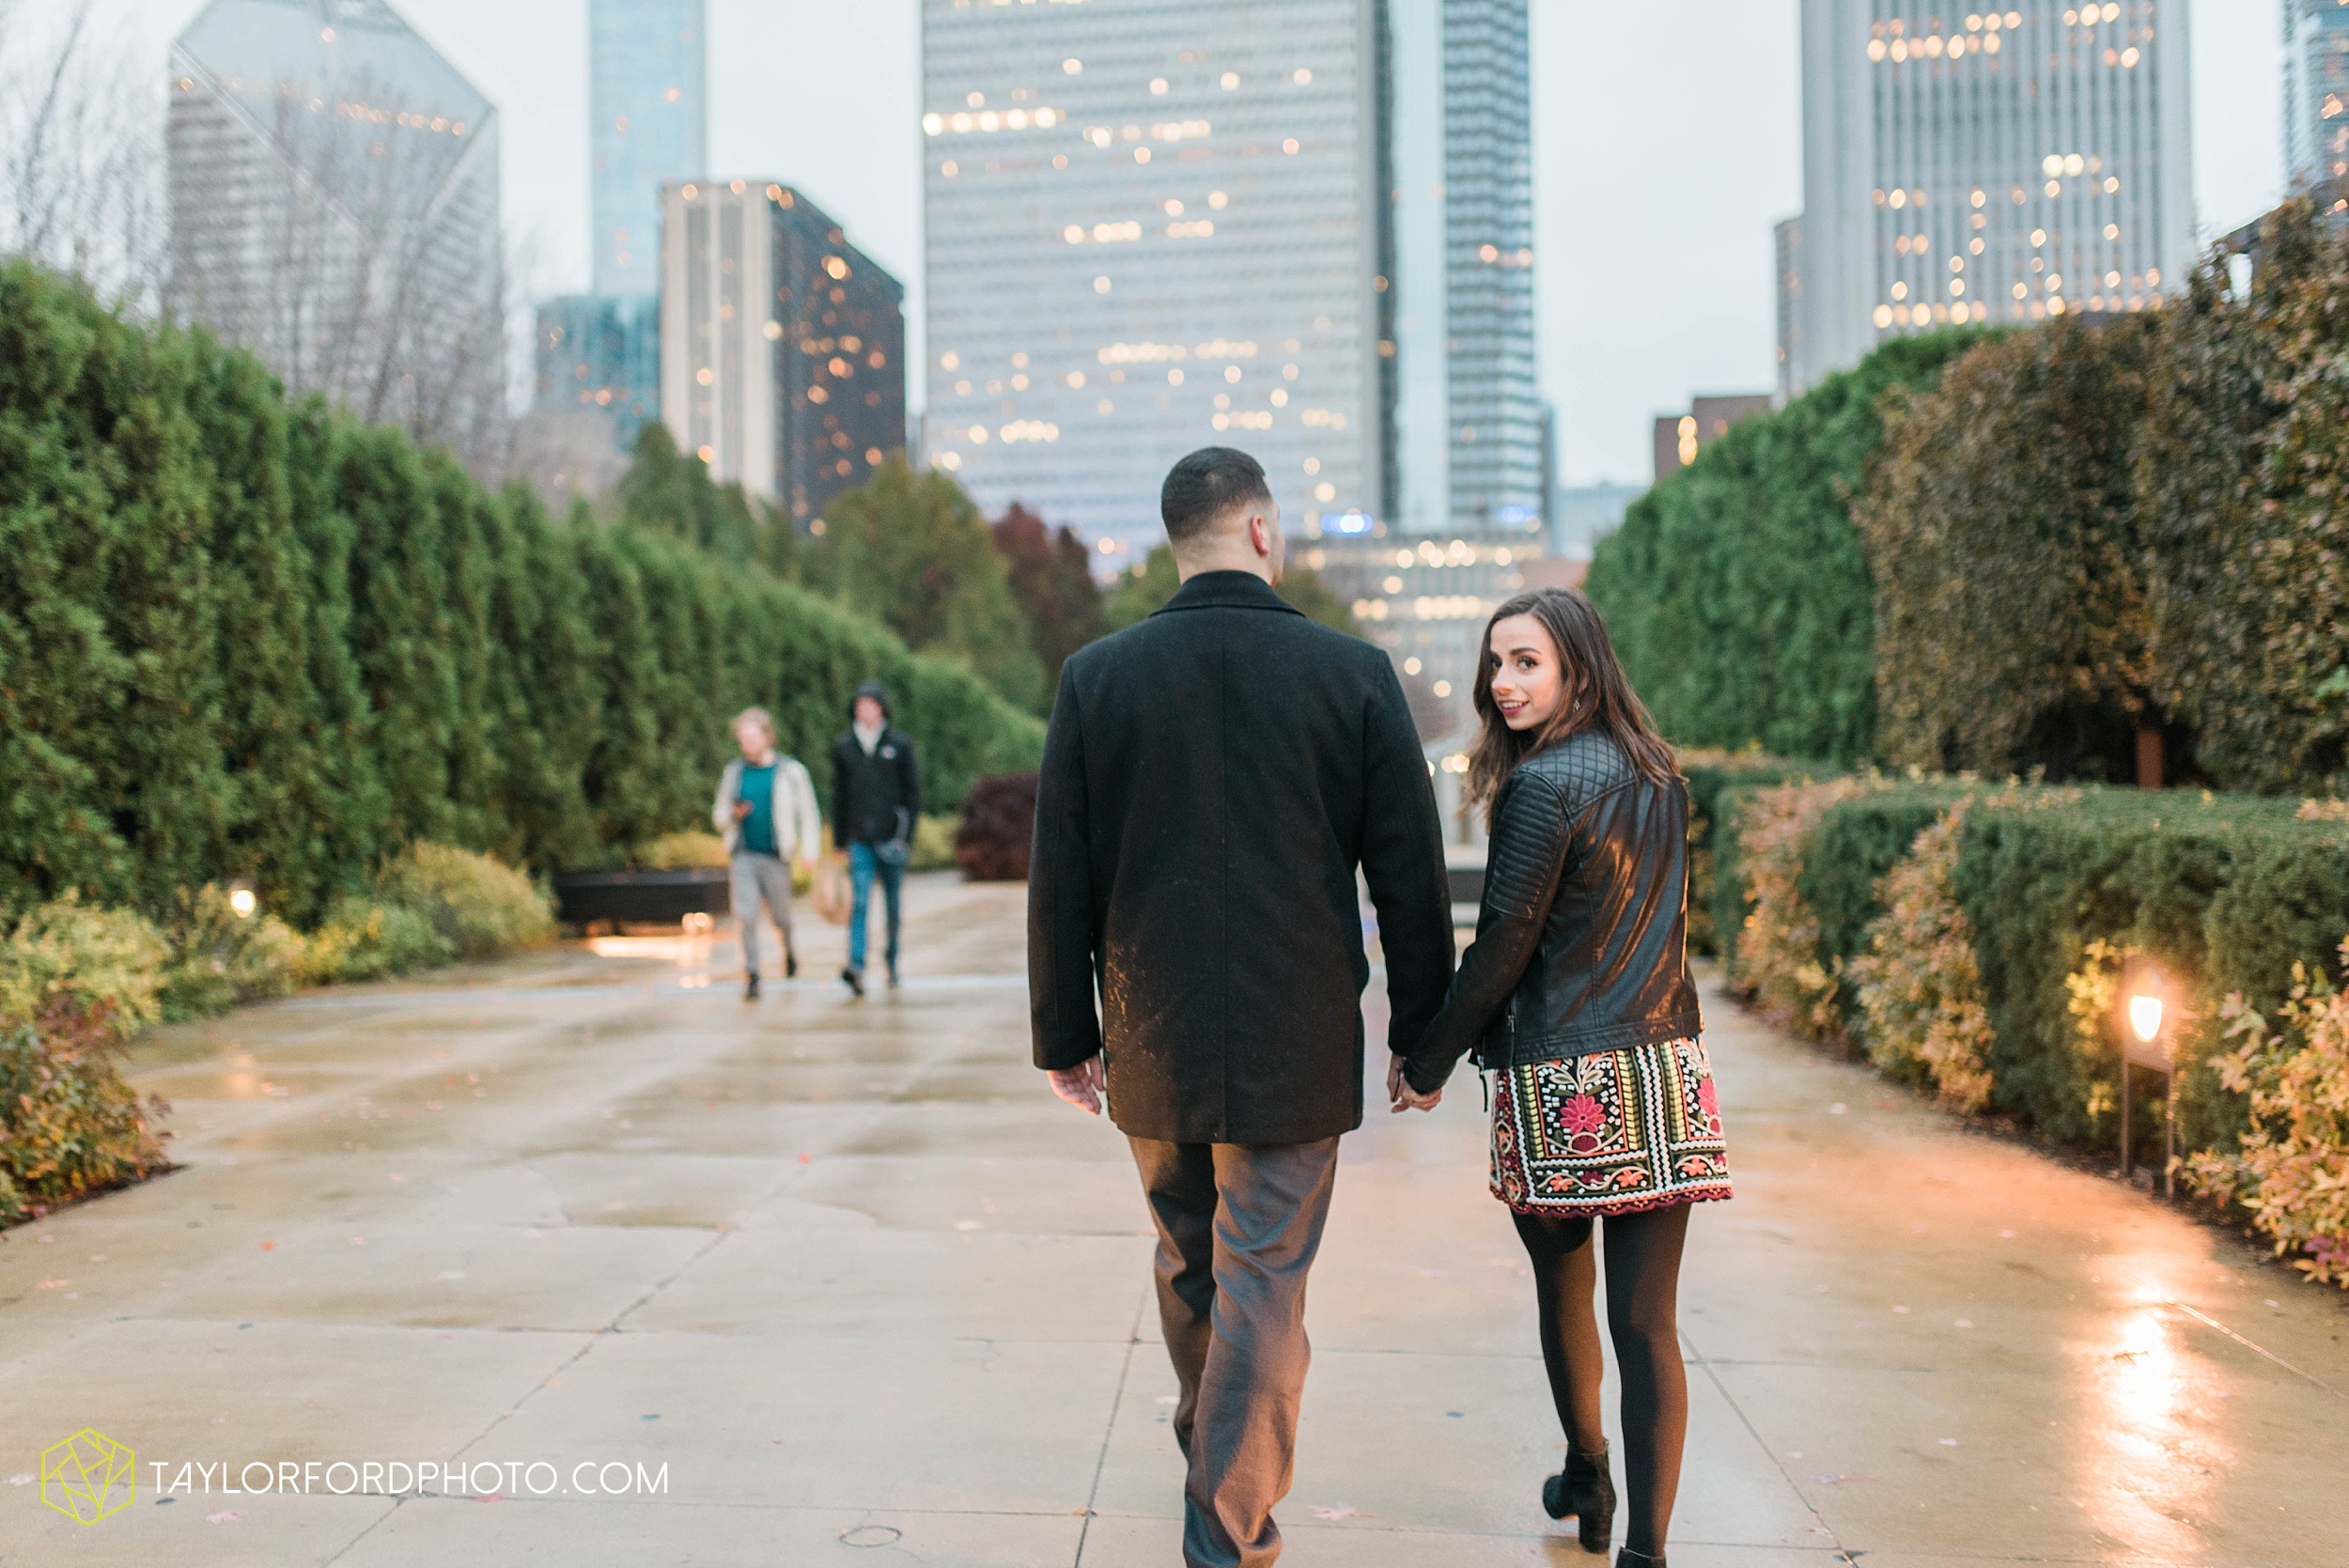 chicago-illinois-engagement-lincoln-park-zoo-downtown-millenium-park-cloud-gate-photographer-Taylor-Ford-Photography_6056.jpg